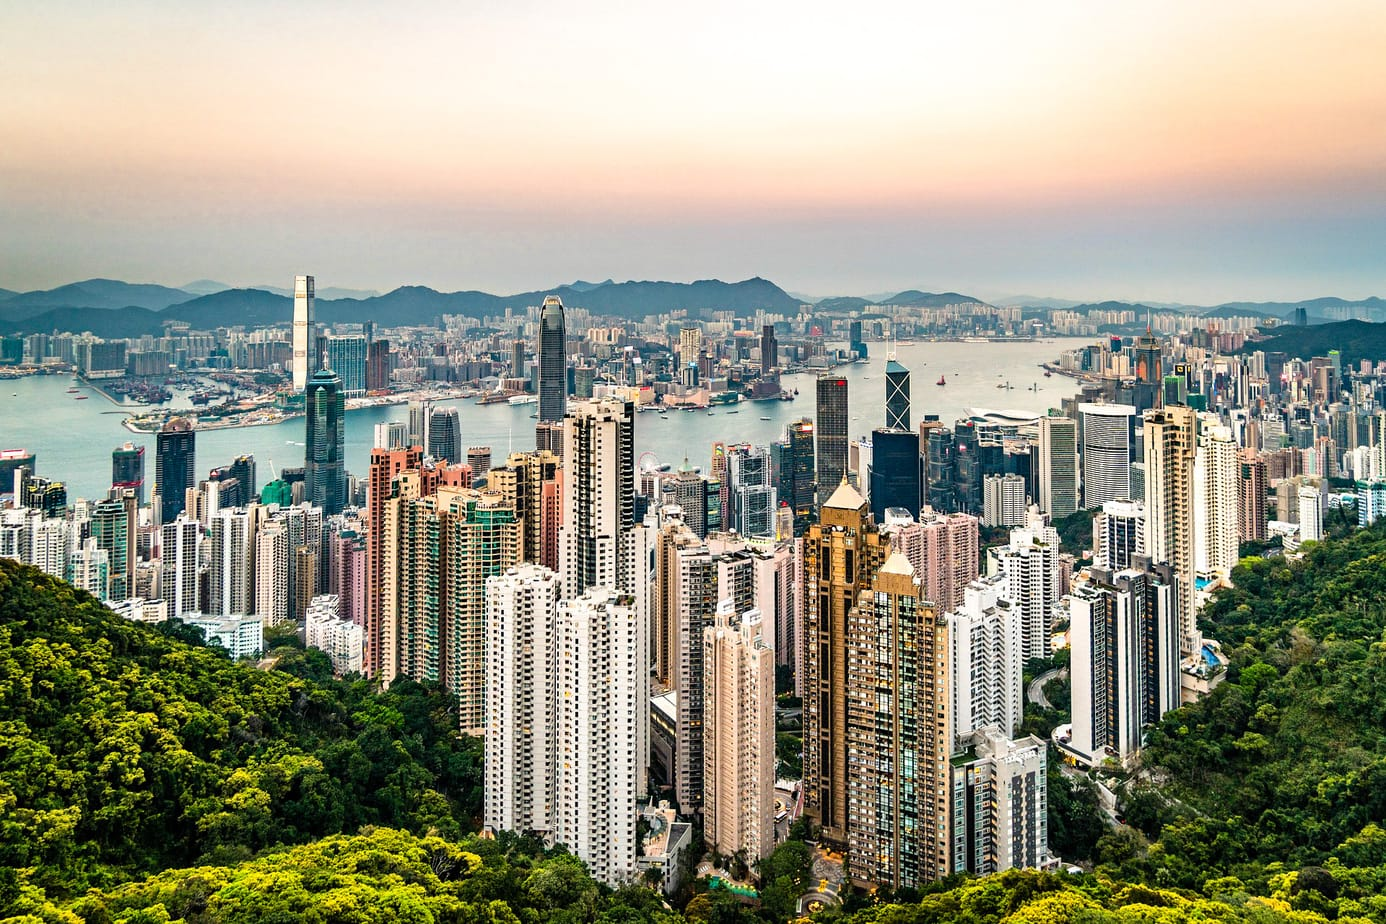 If you are planning a trip to Hong Kong here are 17 tips